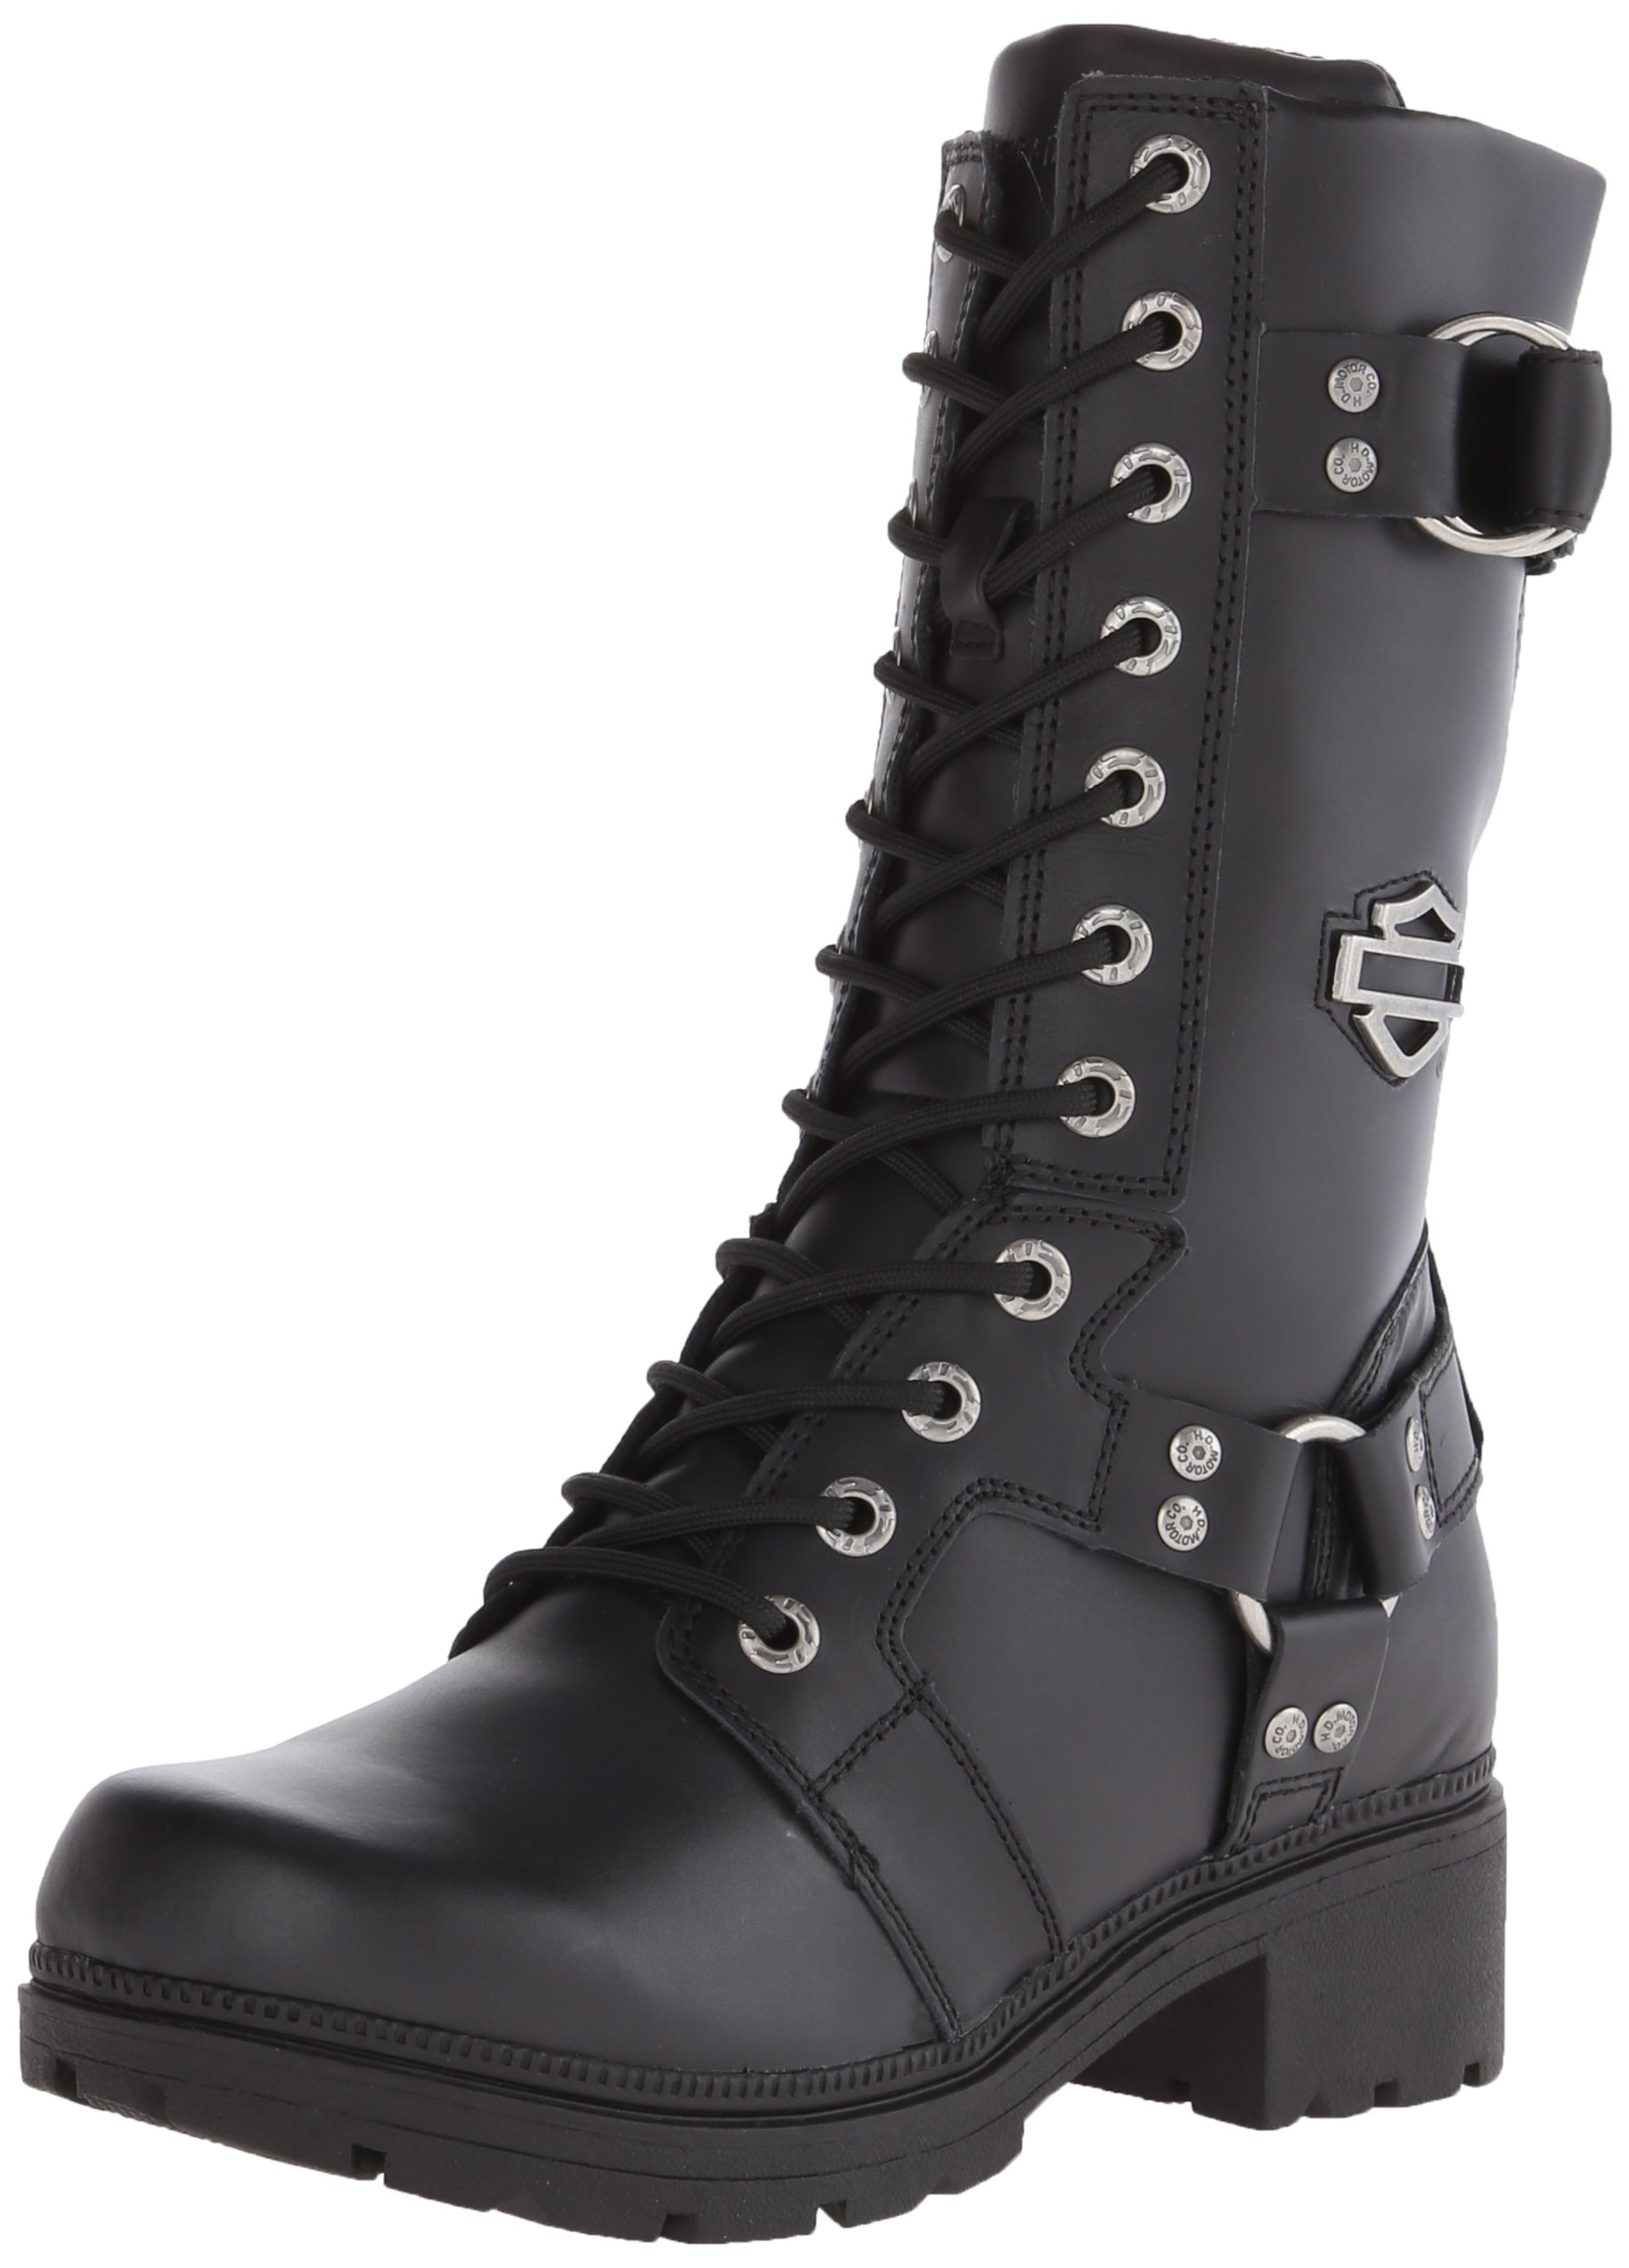 Harley-Davidson Women's Eda Motorcycle Boot, Black, 5 M US